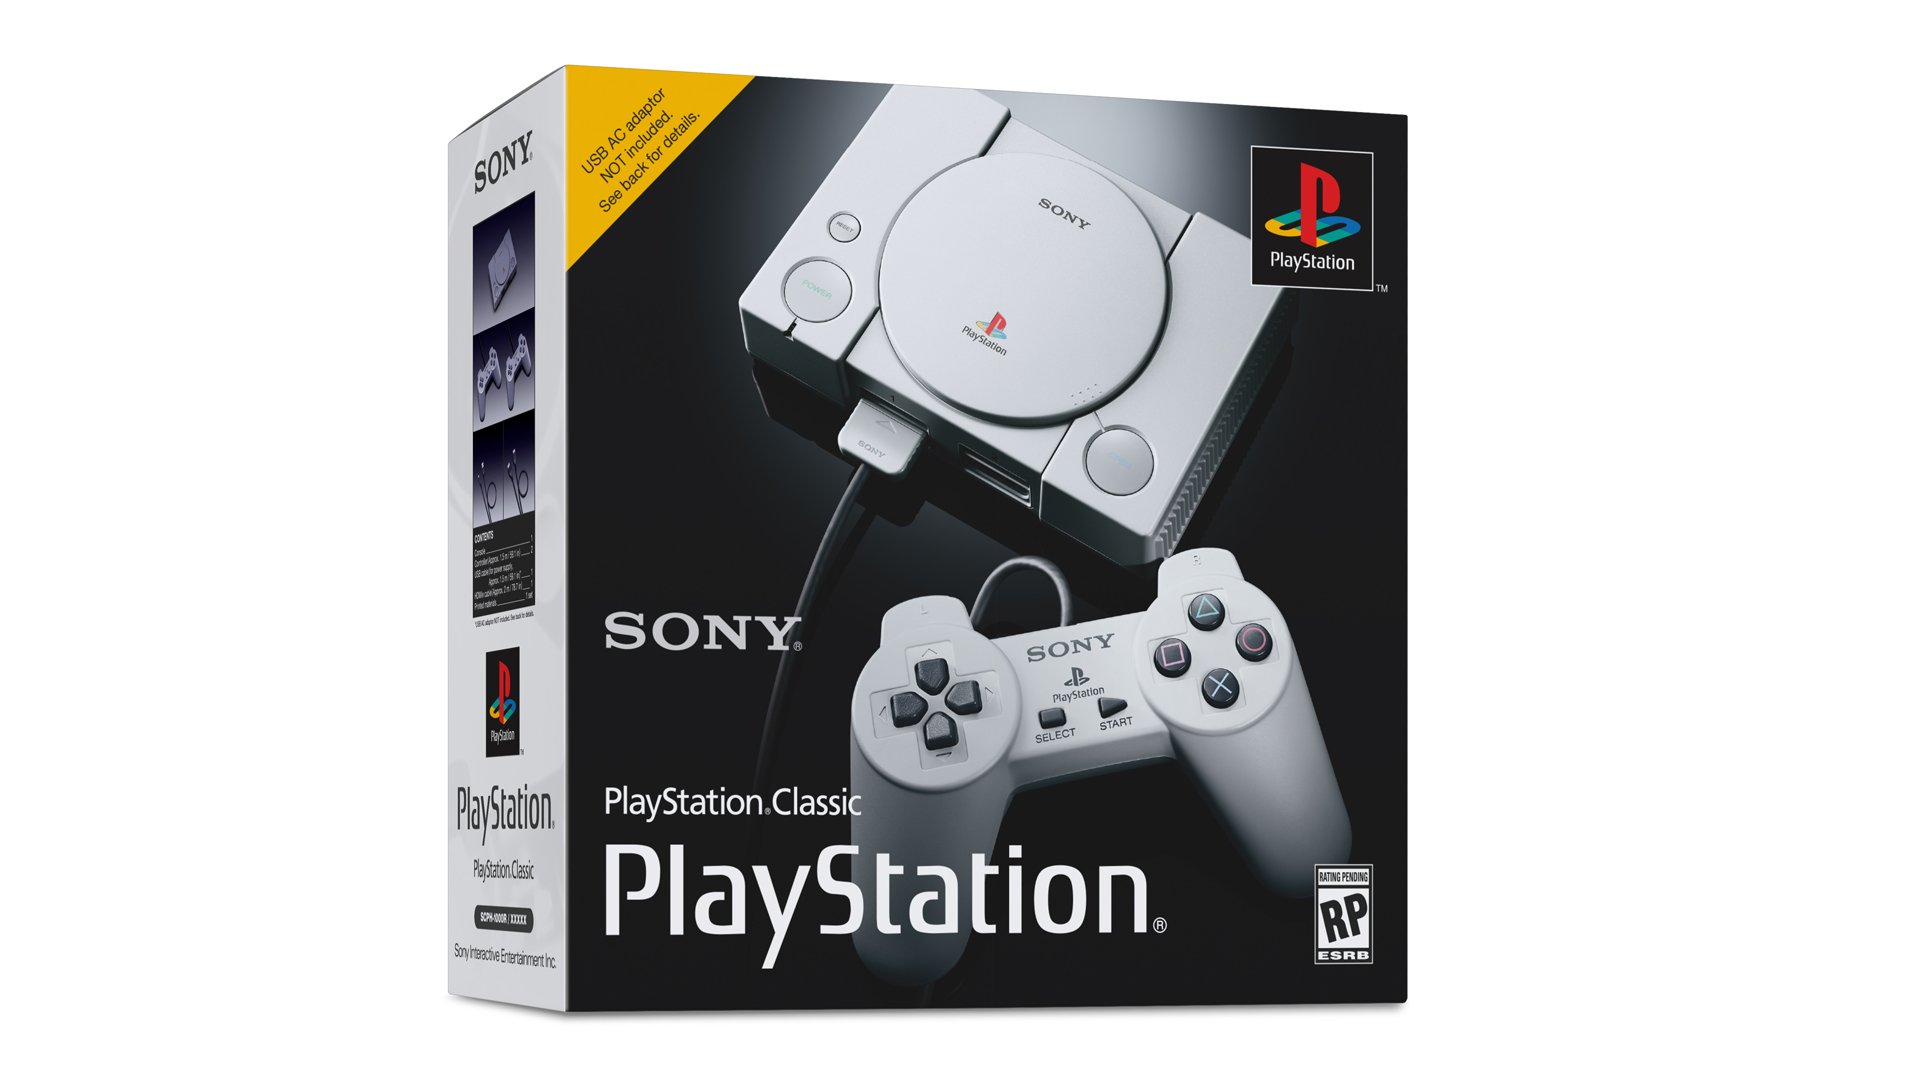 Playstation On Twitter Playstationclassic Ships This December